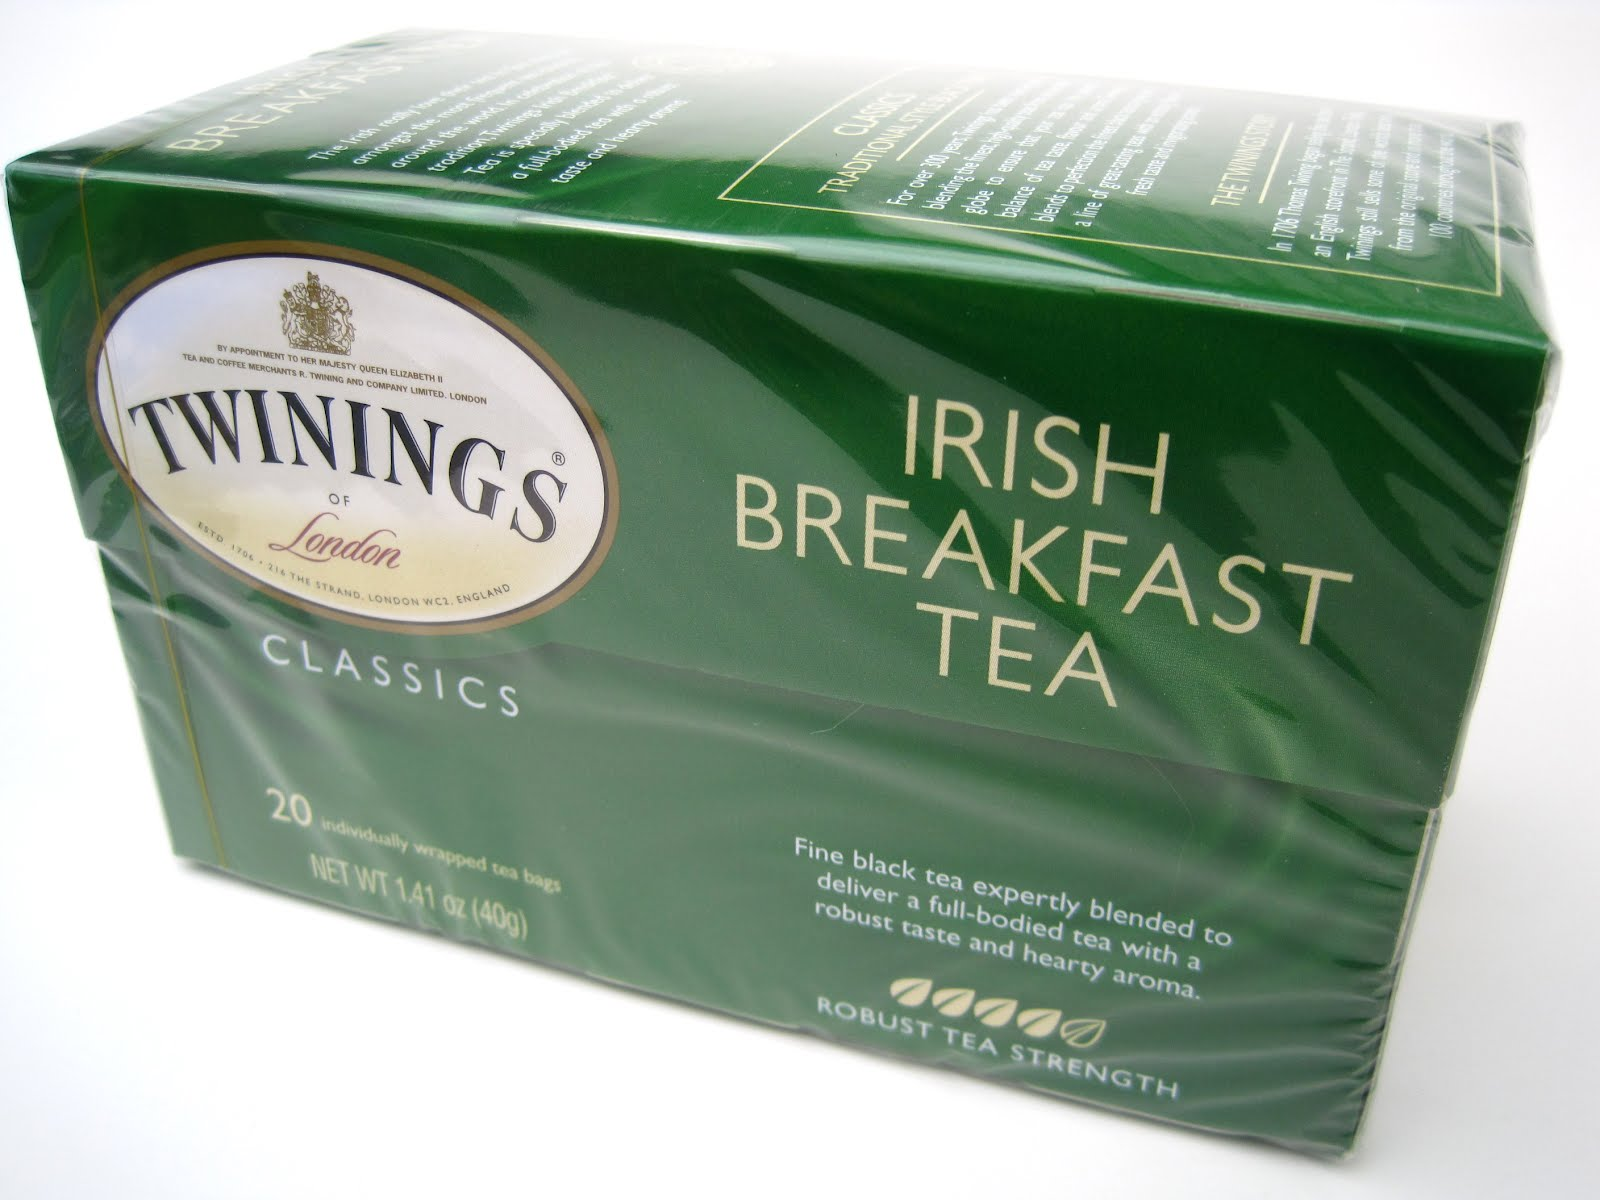 What is irish breakfast tea